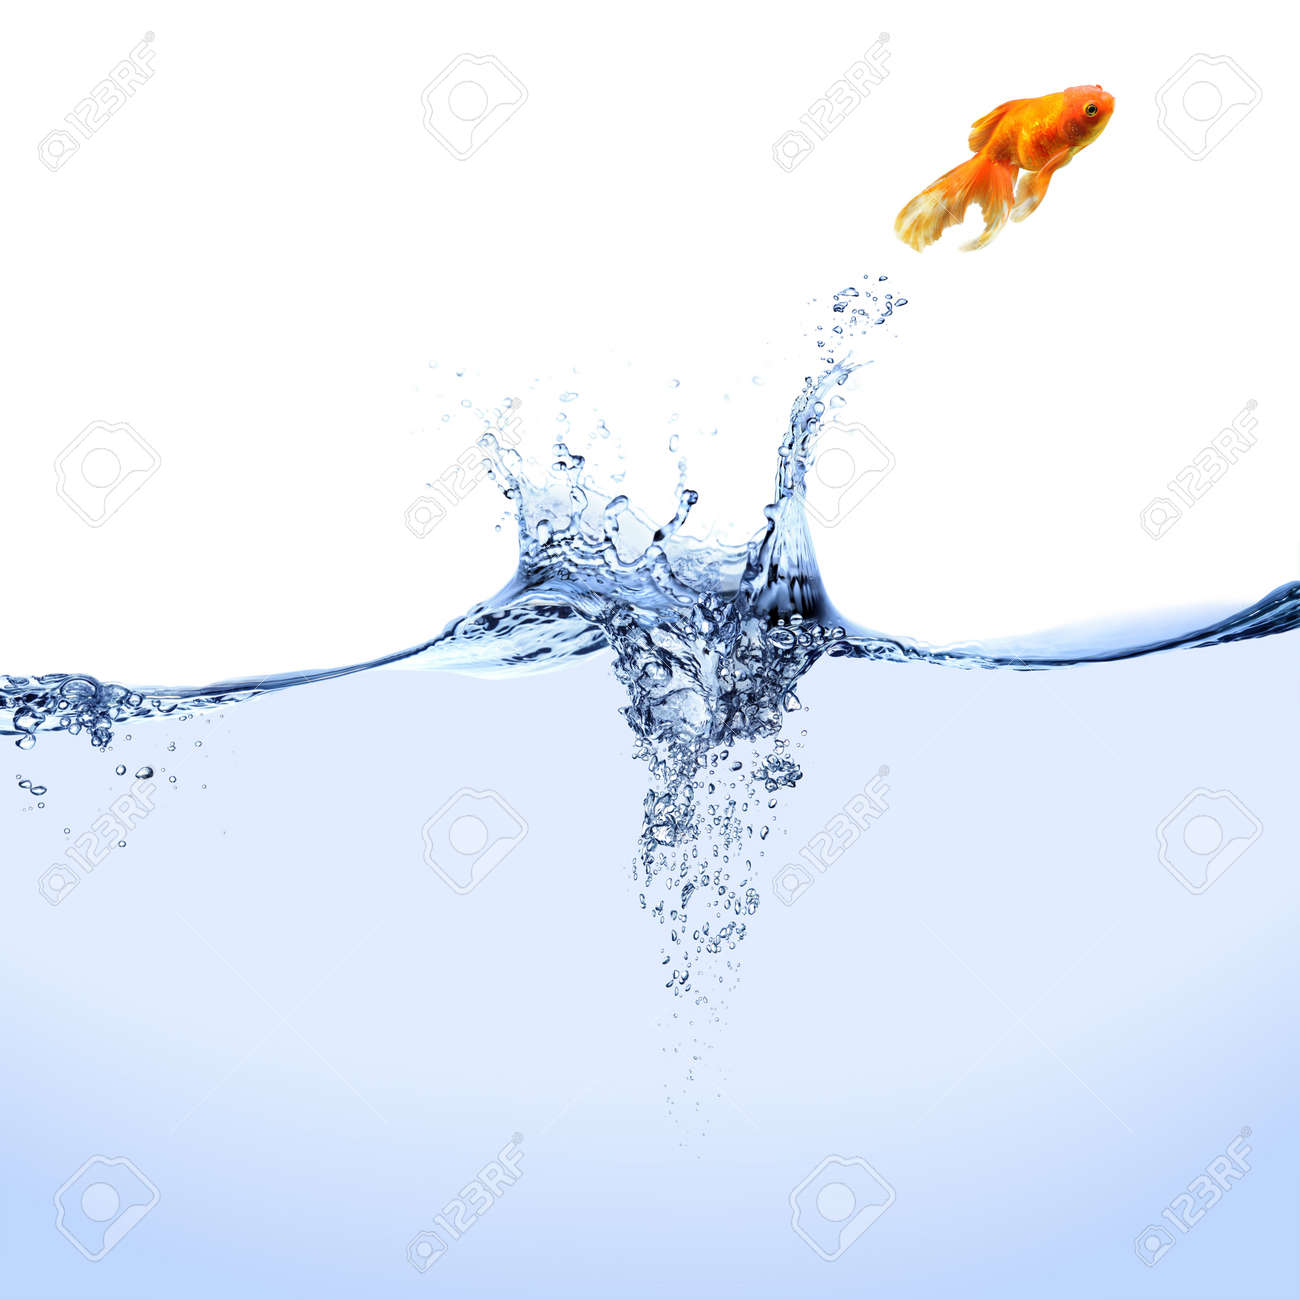 A goldfish jumping out of the water. - 4581342